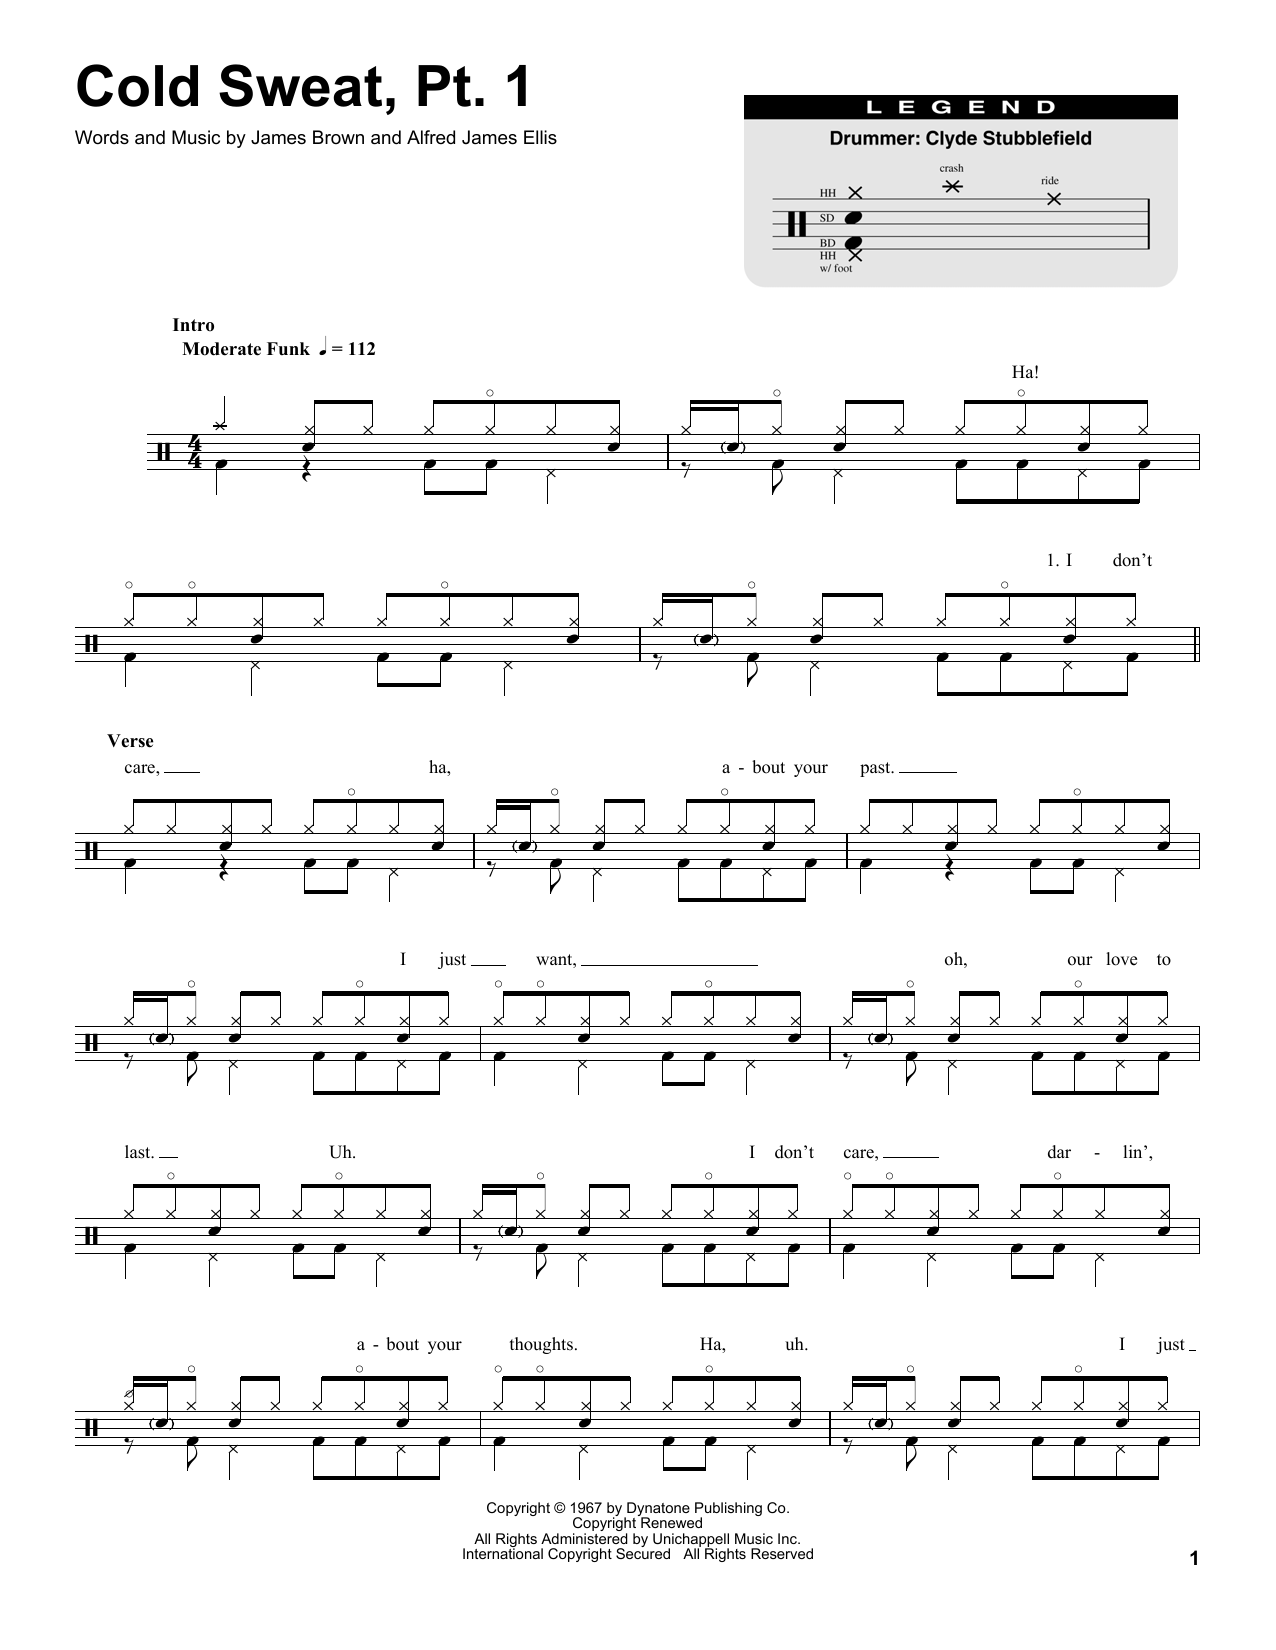 Cold Sweat, Pt. 1 (Drums Transcription)